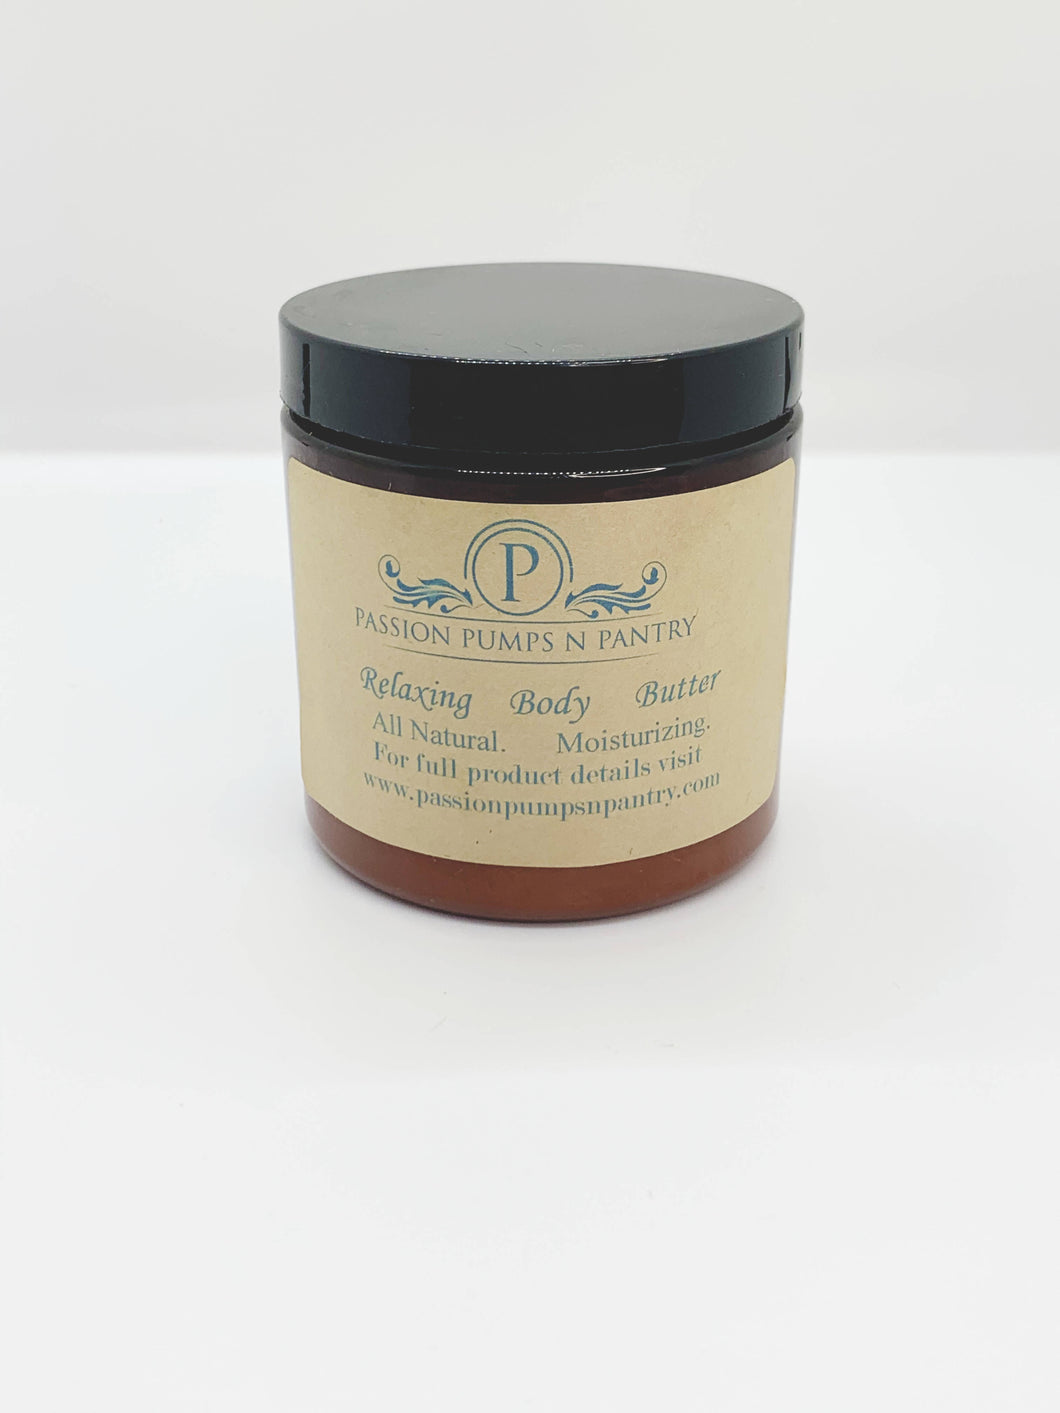 Passion Pumps N Pantry Relaxing Body Butter